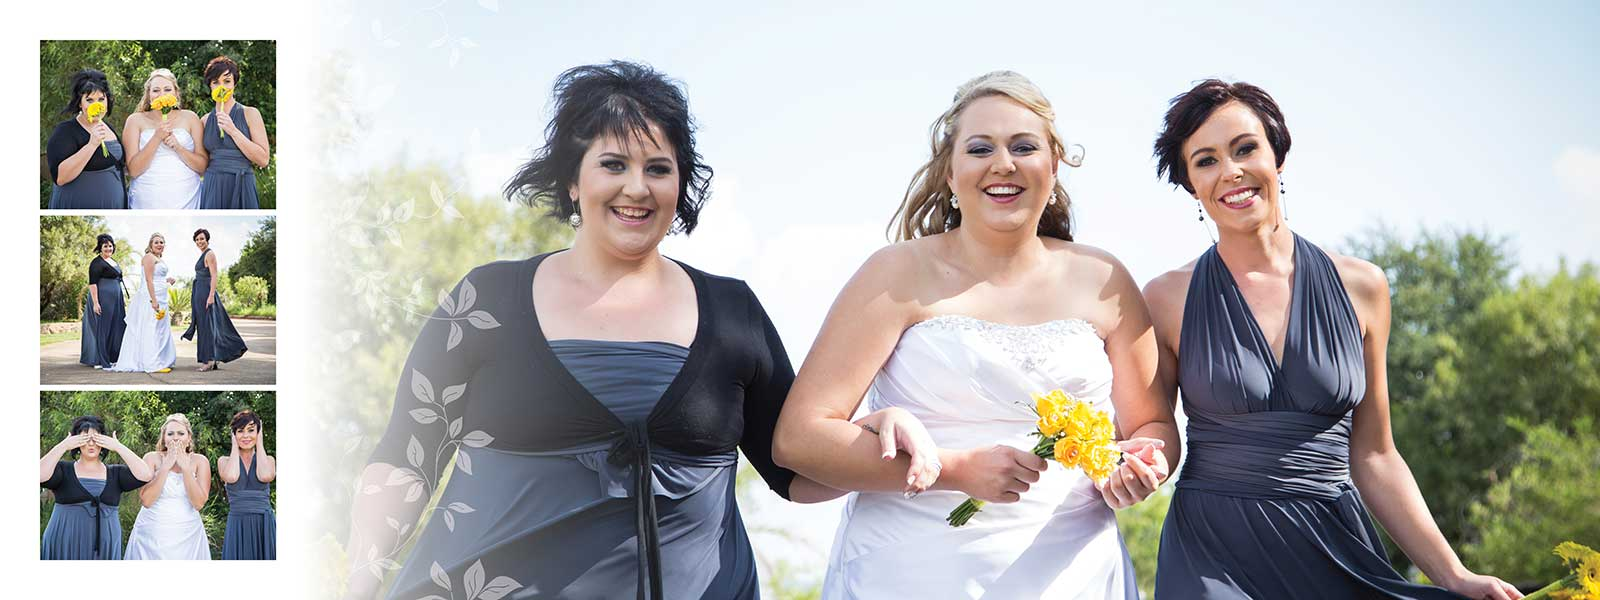 Bride and Bridesmaids - Blue and Yellow